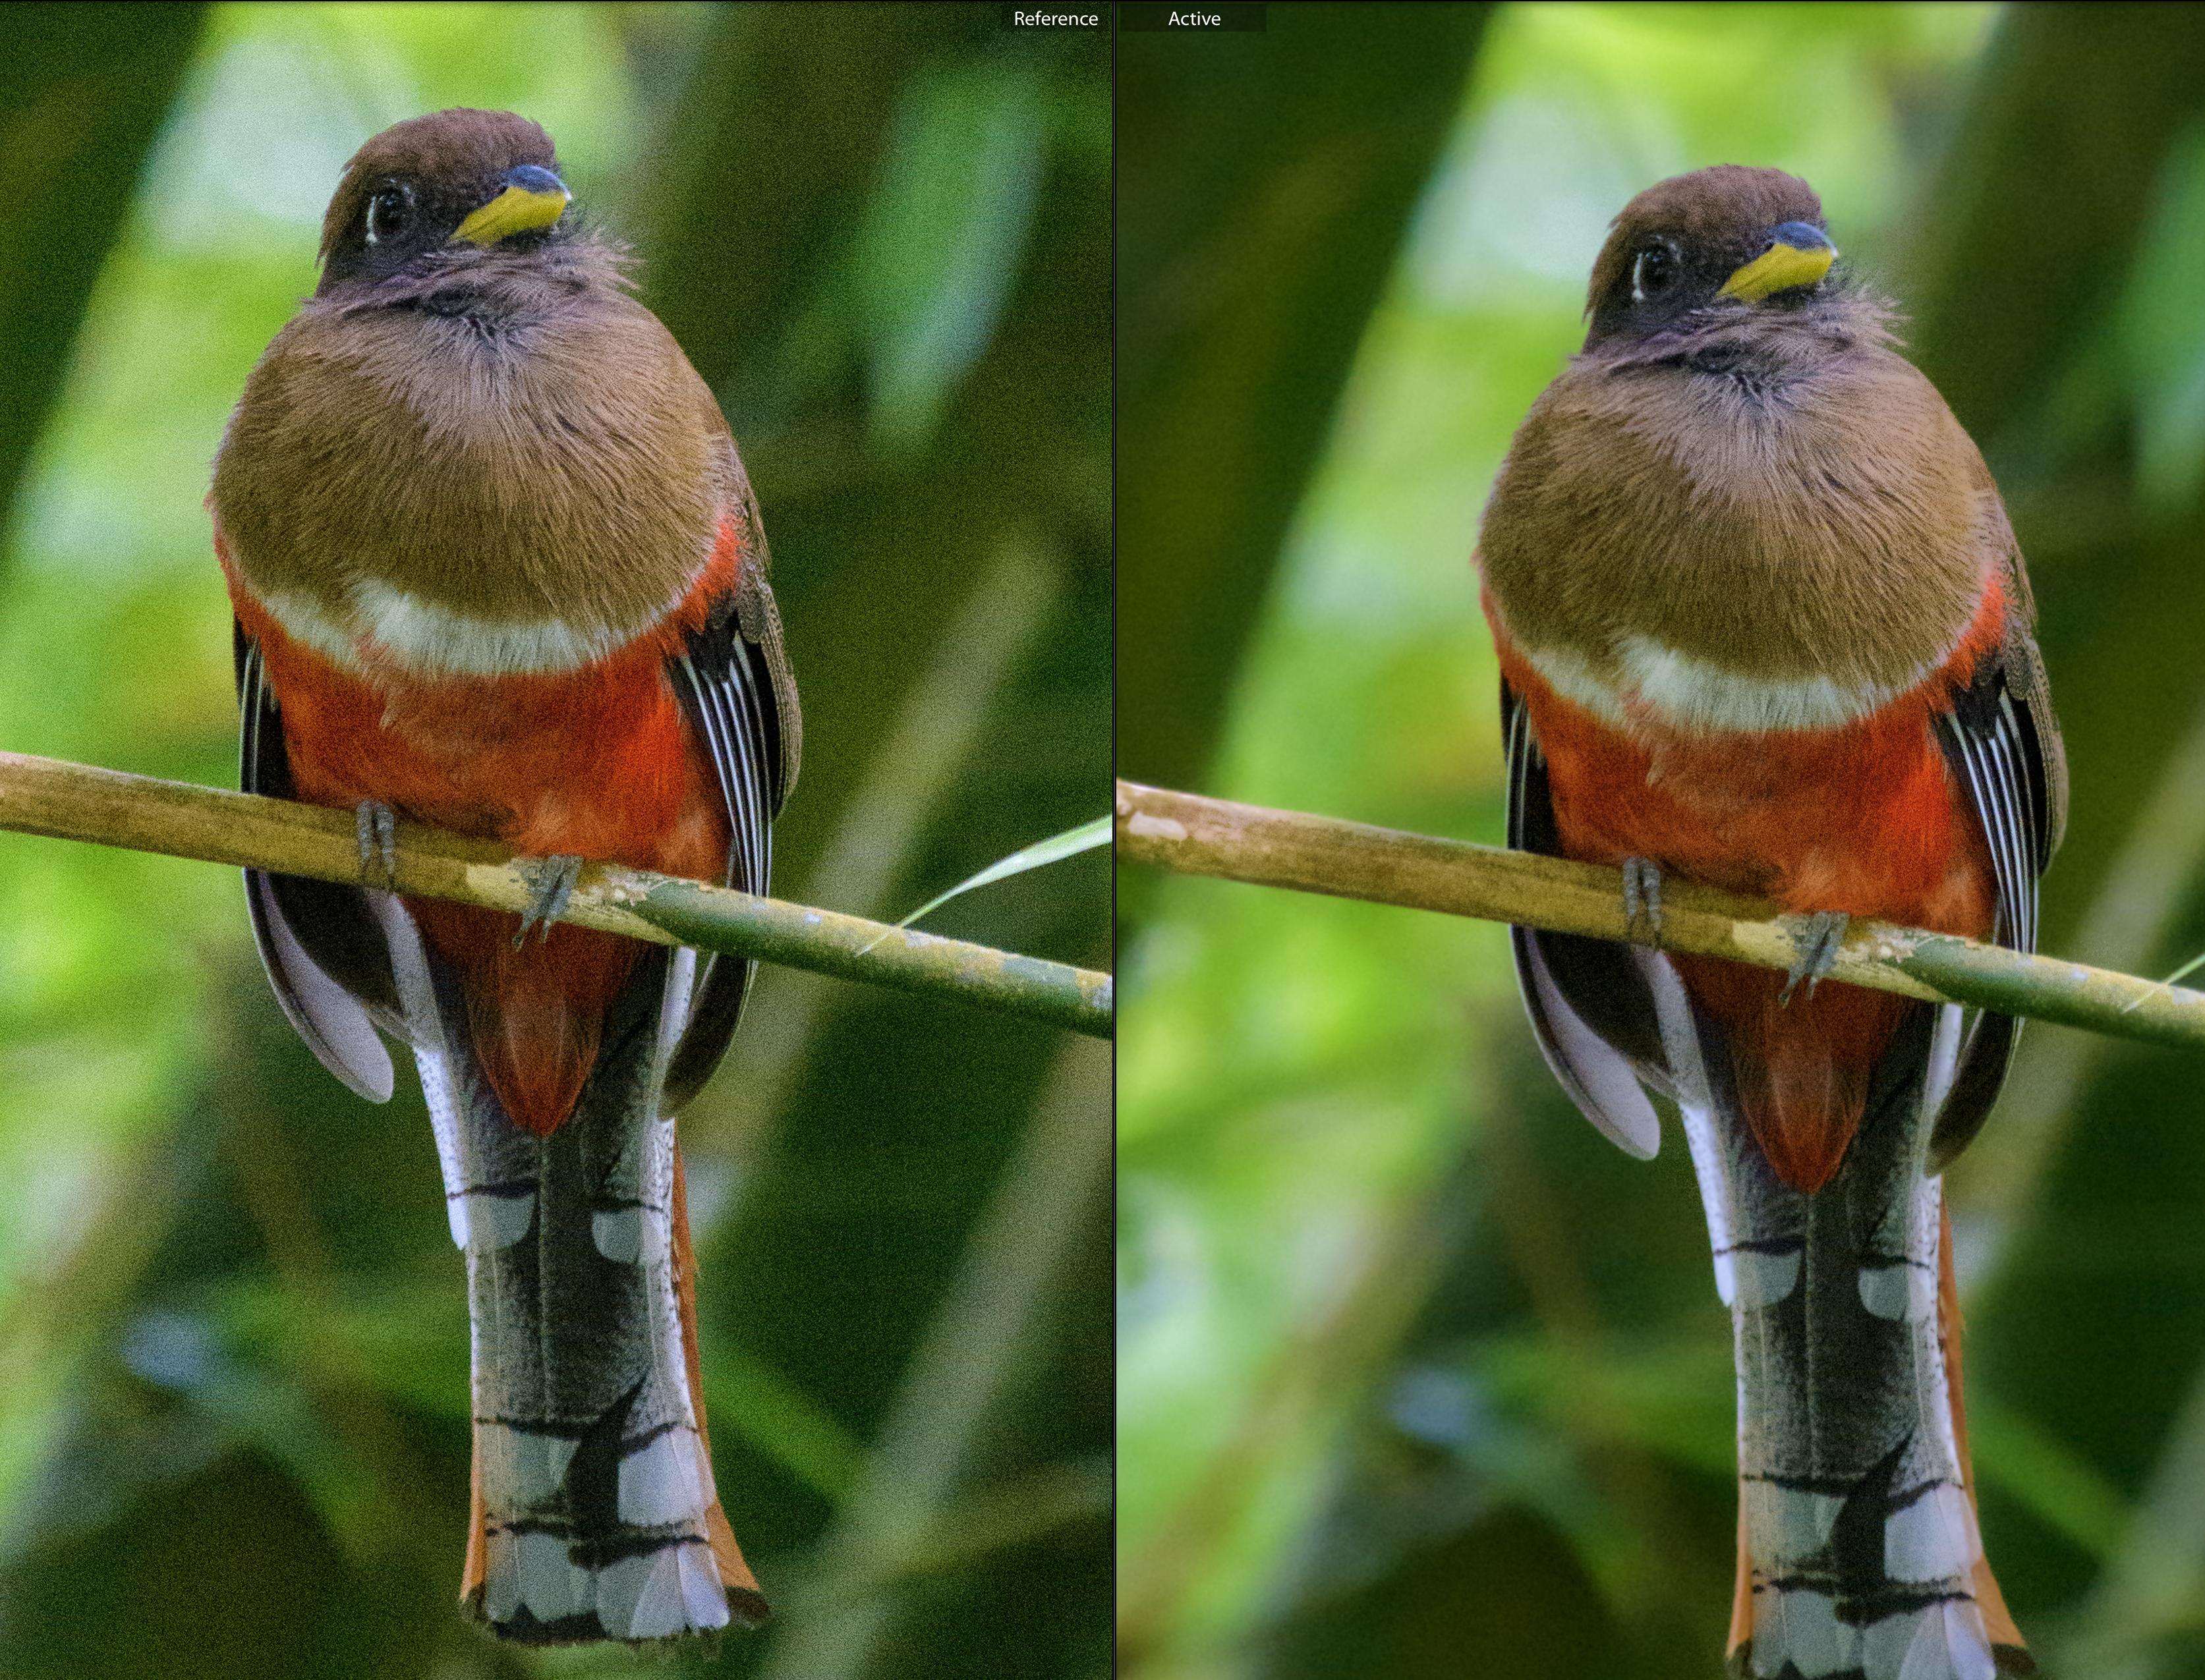 Comparison between default and custom sharpening and noise reduction settings in Lightroom Classic.